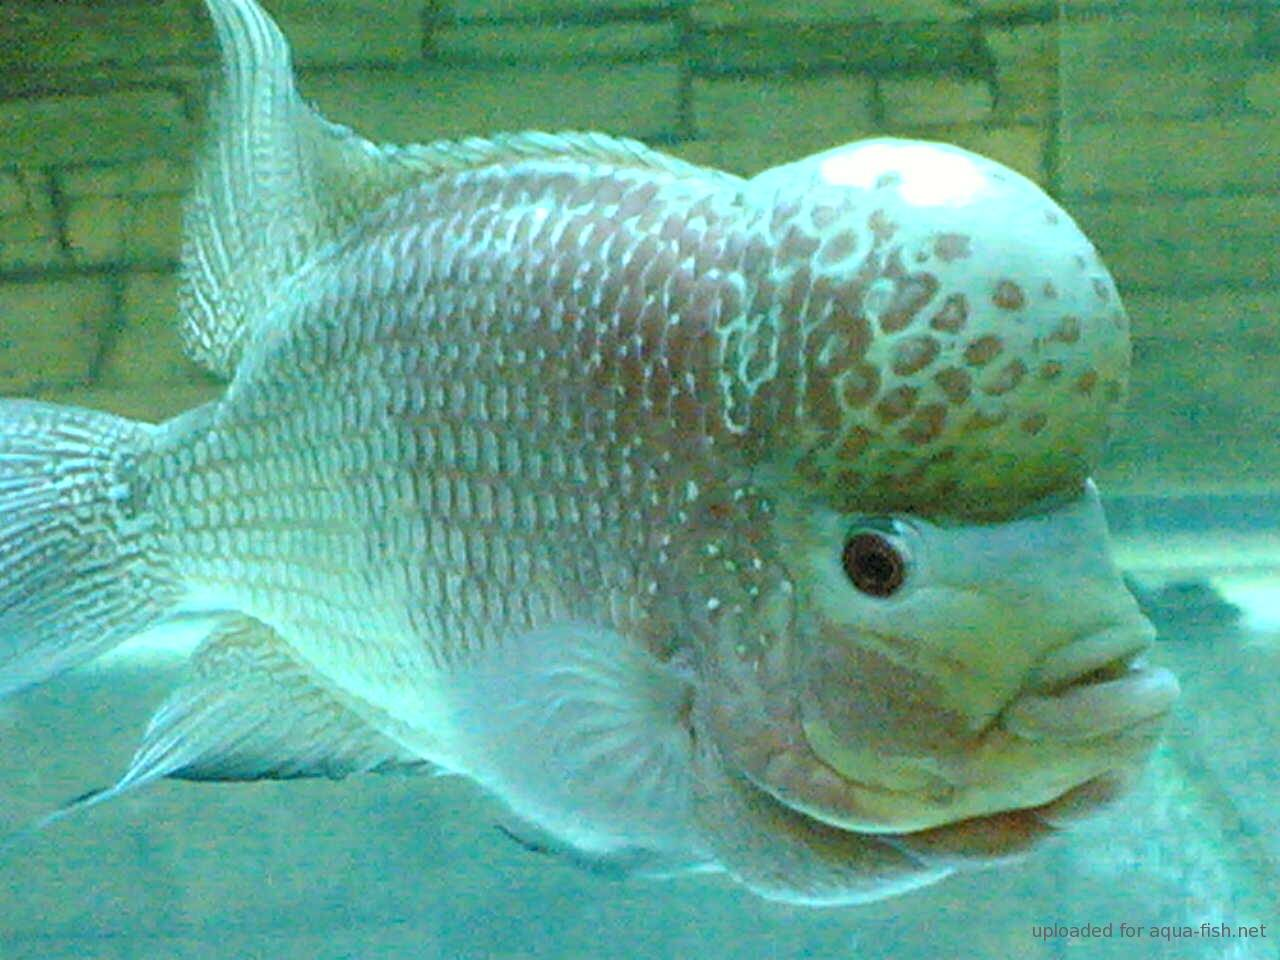 Flowerhorn The Hybrid Cichlids How to Know Male or Female Flowerhorn Fish